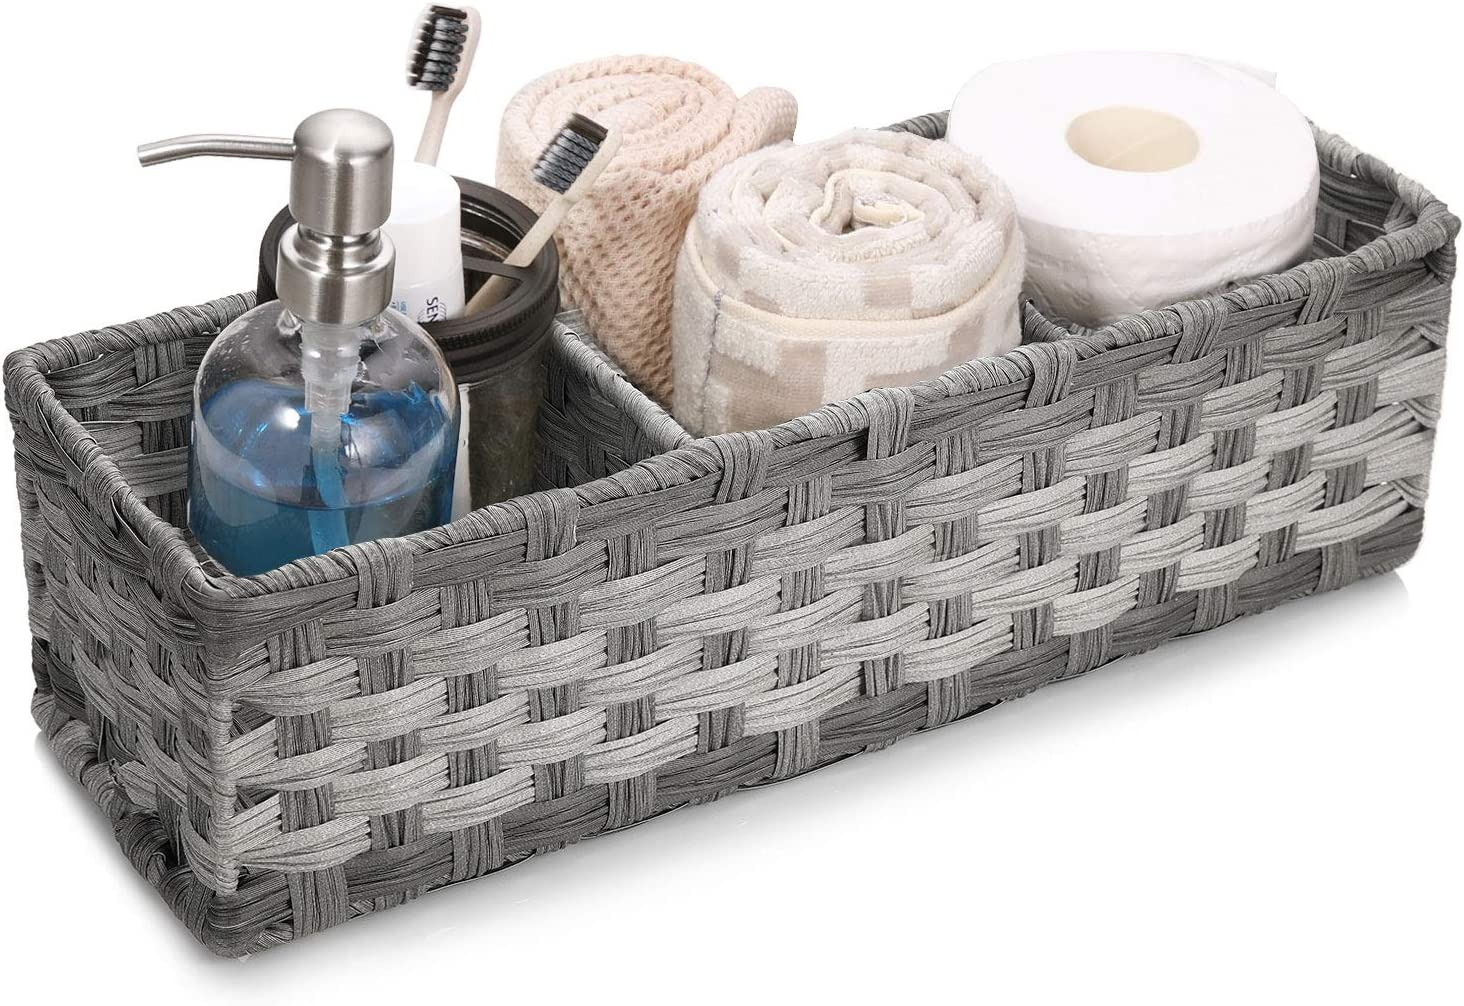 [Larger Compartments] Toilet Paper Basket for Tank Topper - Over, Top, Back of Toilet Tank Tray Split Hand-woven Basket - Rustic, Farmhouse Bathroom Decor, Storage Bin, Counter Organizer Basket, Gray